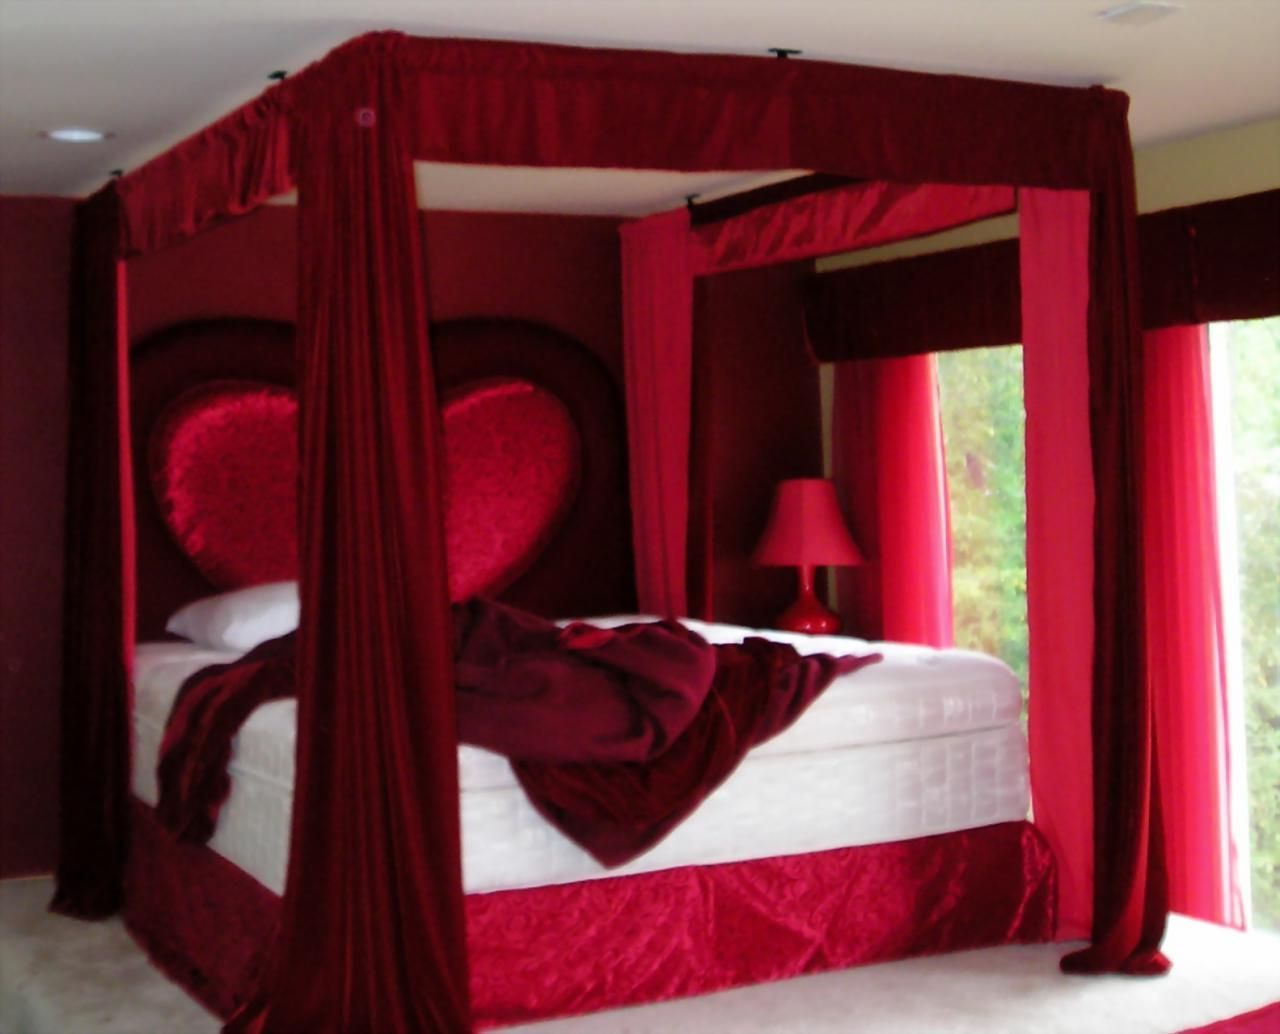 Bed Room, Lovable Bedroom Ideas For Couple With Fascinating Red Canopy  Above Stunning Glazing Window Interesting Headboard Marvelous Lamp Side:  Comfortable ...